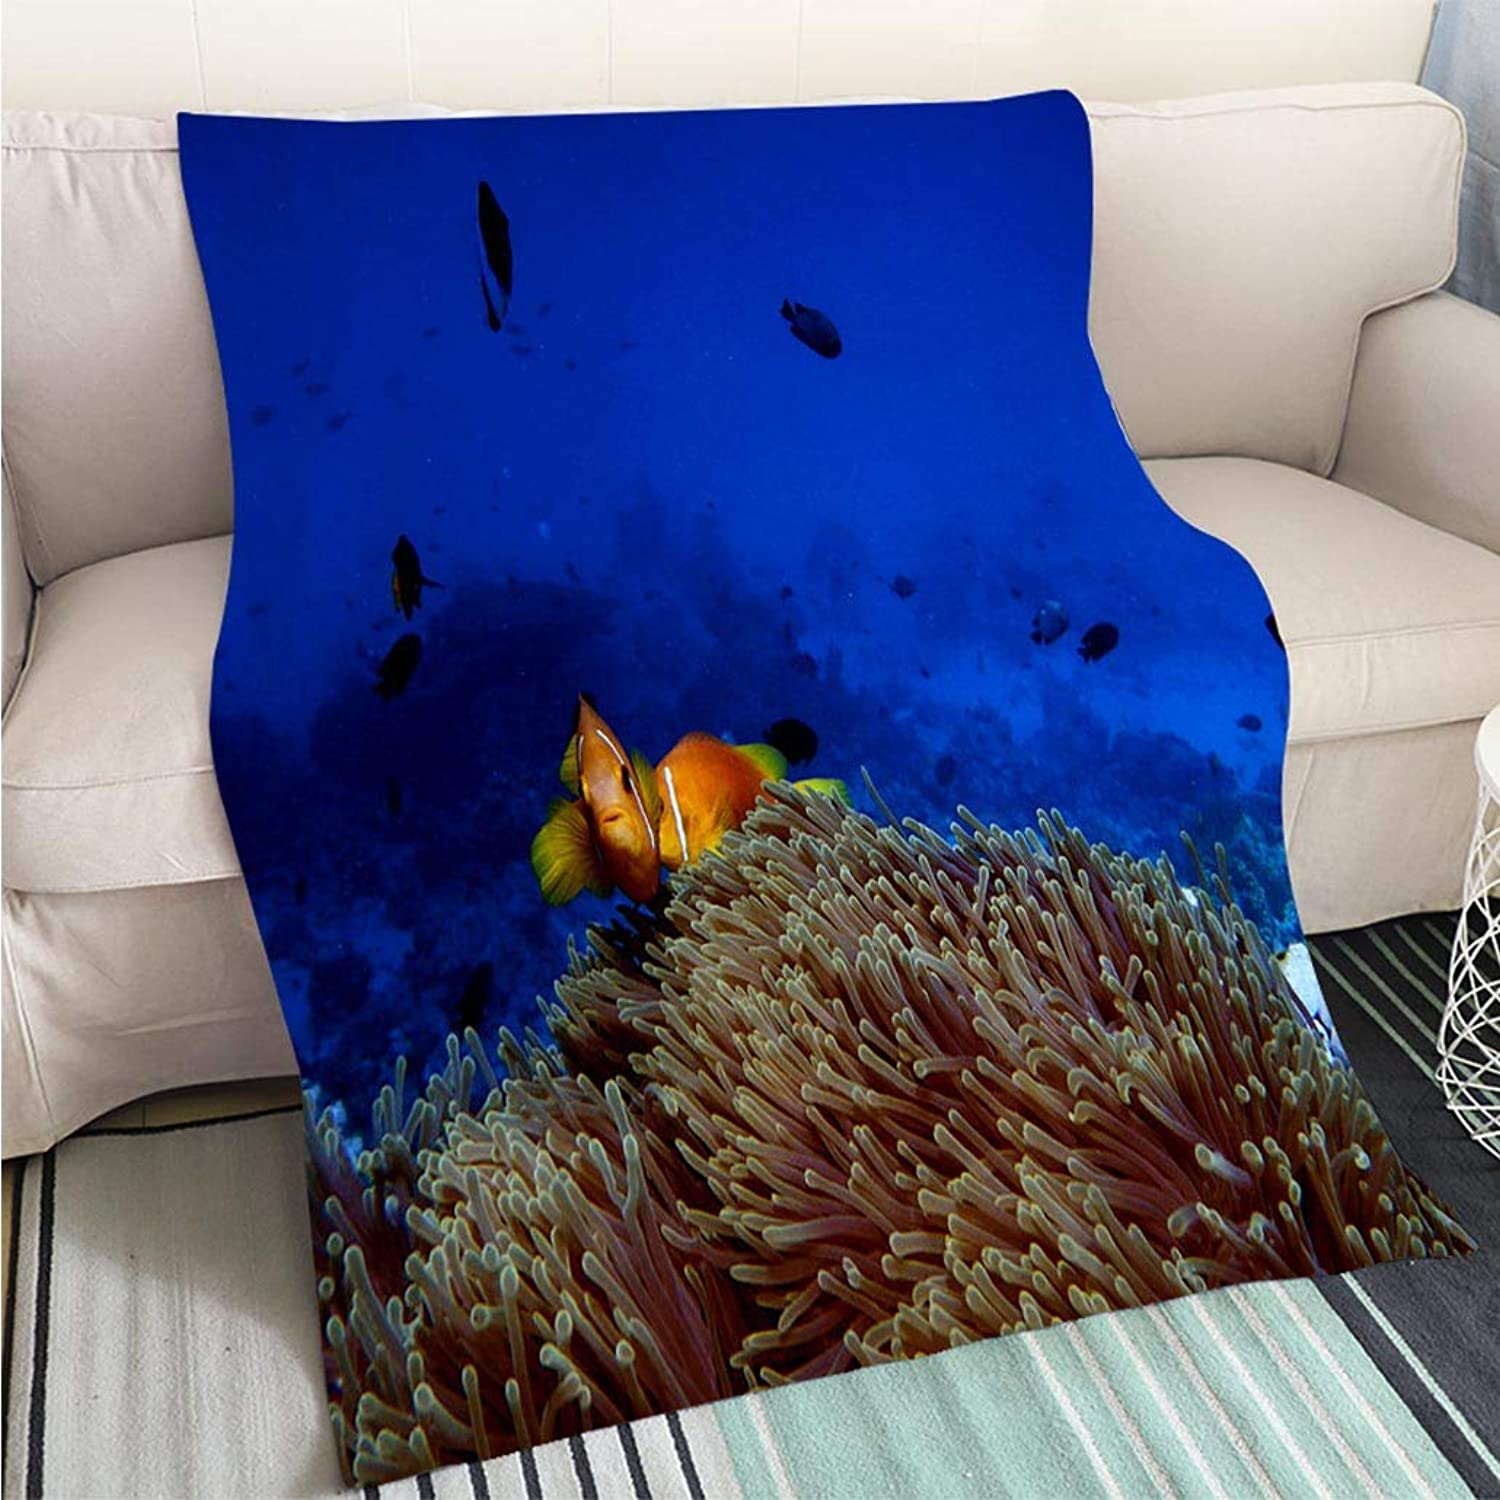 Home Digital Printing Thicken Blanket Clown Fish in Anemone Perfect for Couch Sofa or Bed Cool Quilt